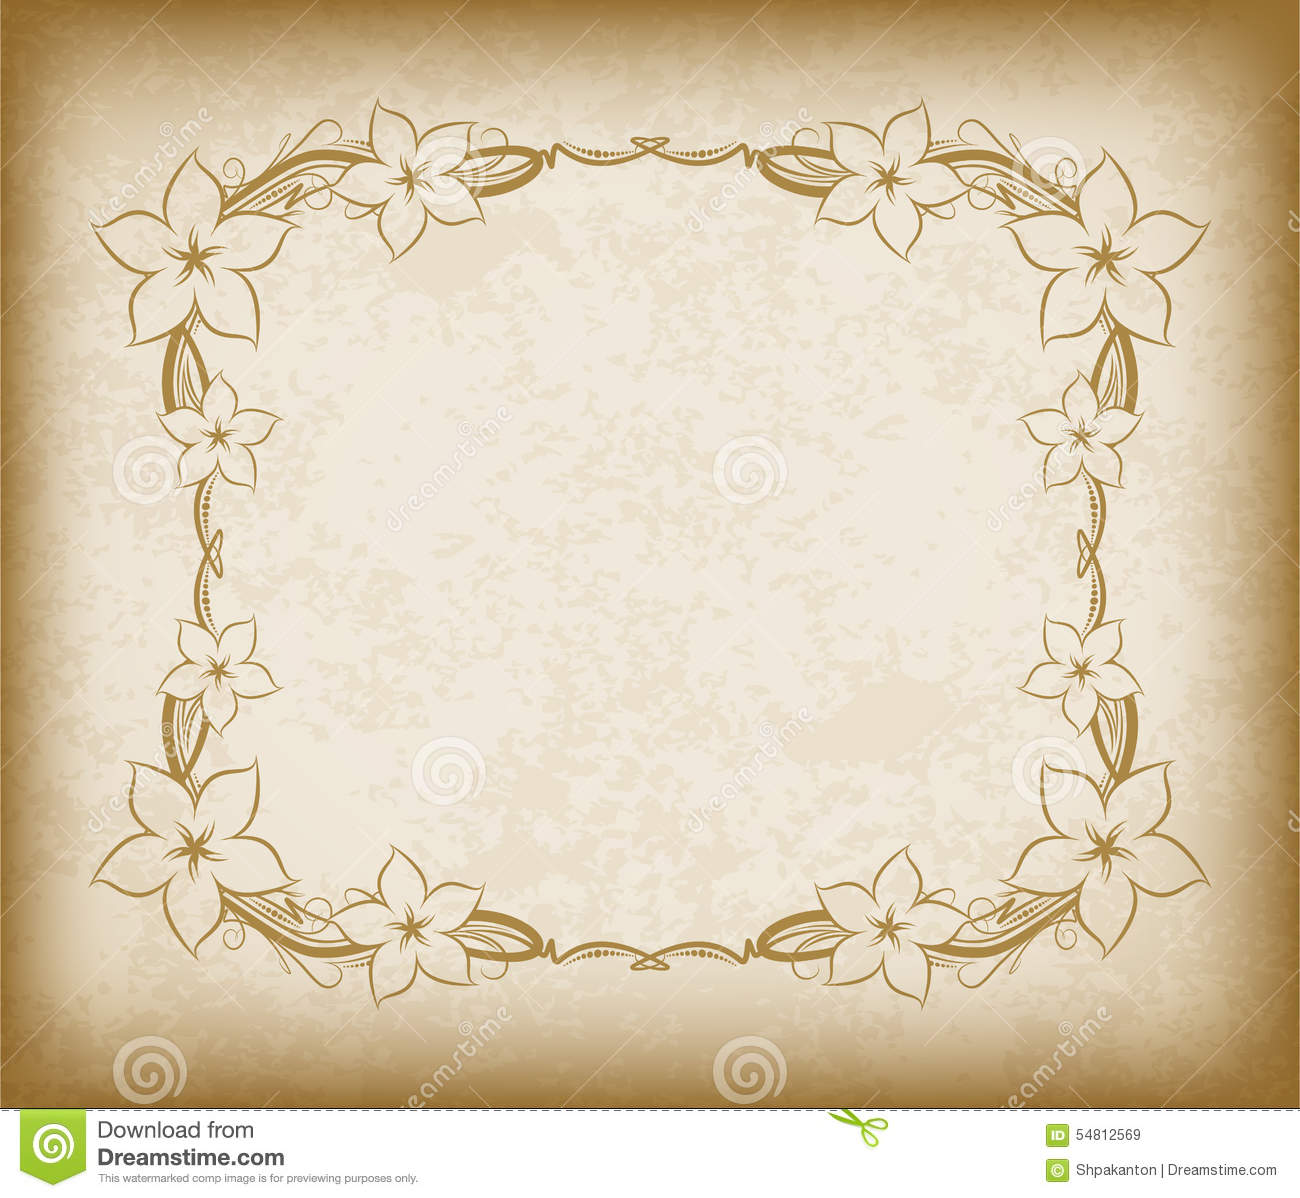 Old Frame With Flowers On Aged Paper With Dark Edges And A